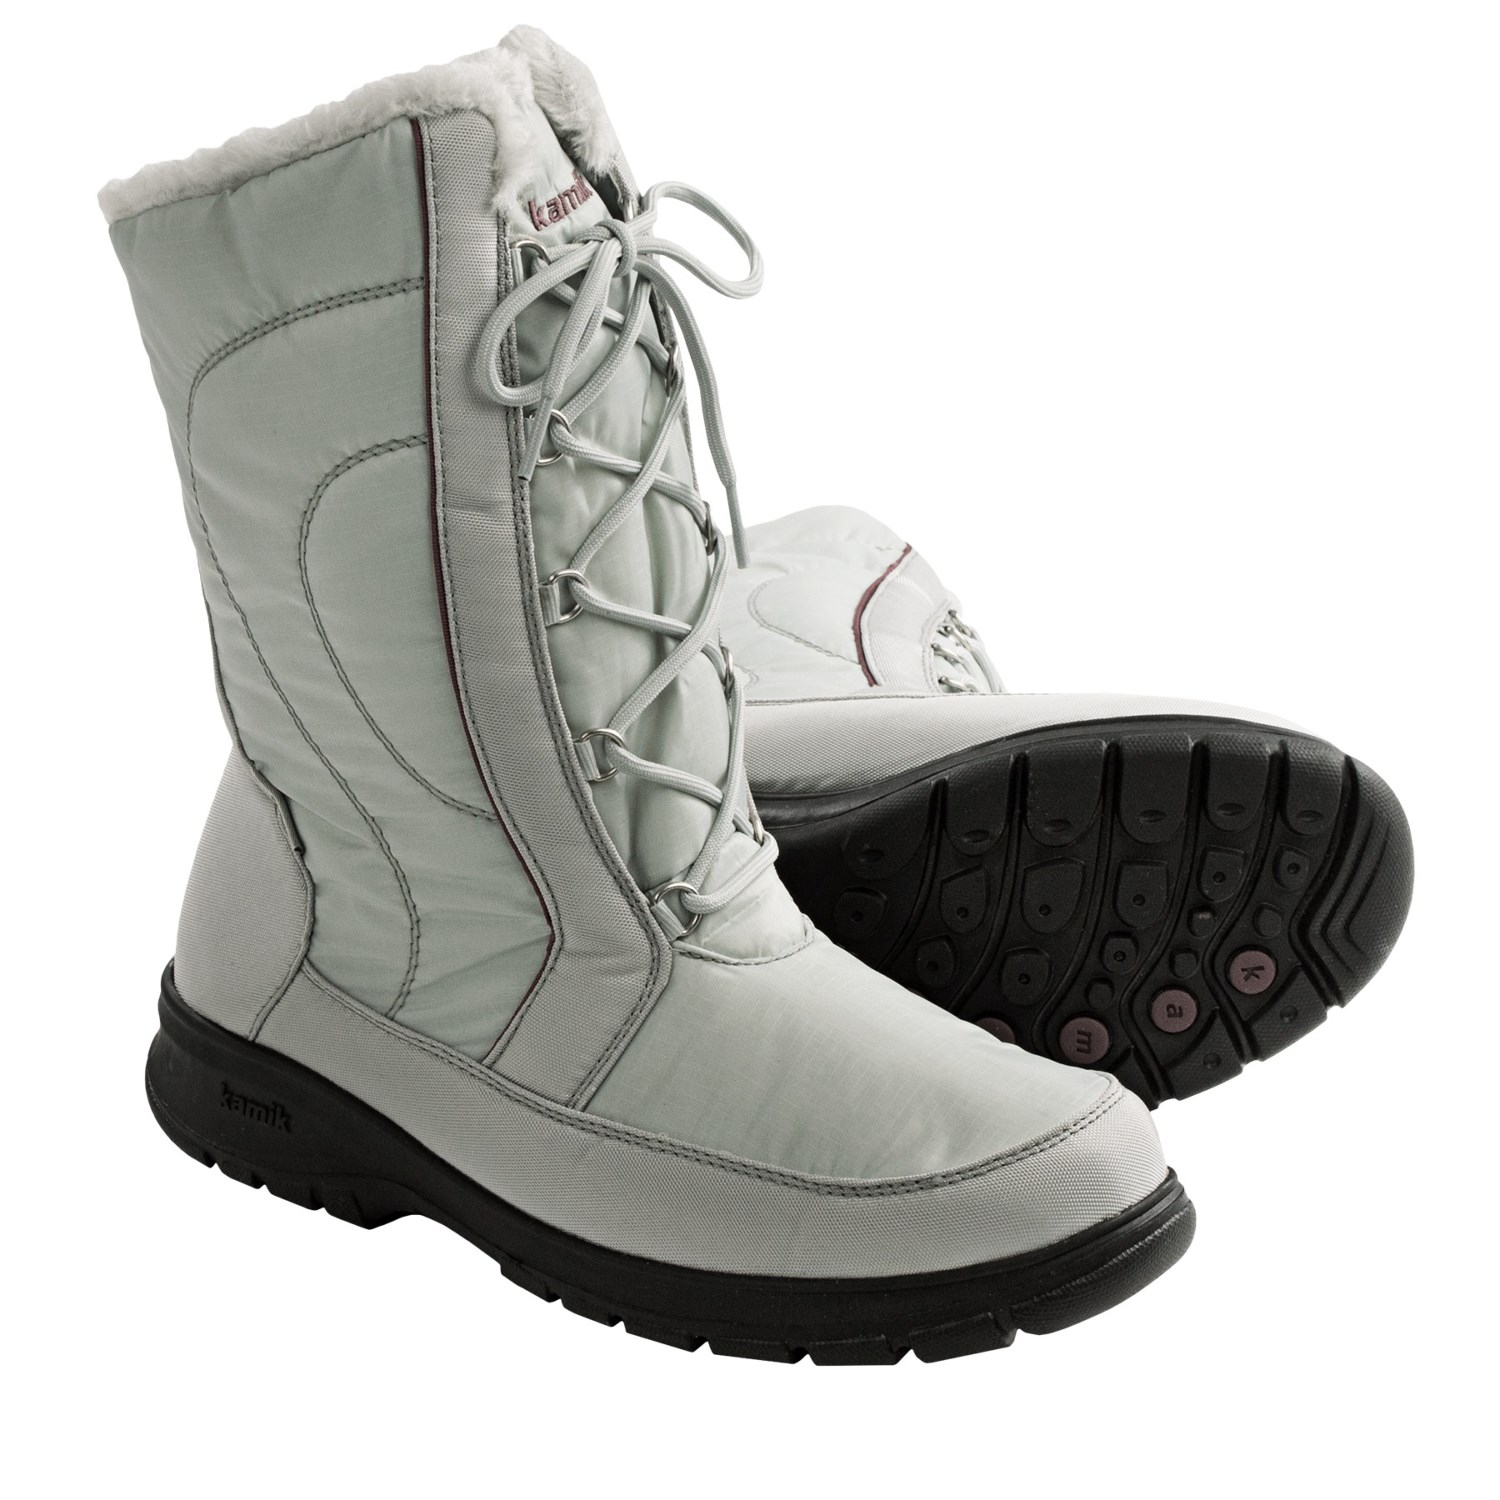 Vienna2 Snow Boots - Waterproof, Insulated (For Women) in Light Grey